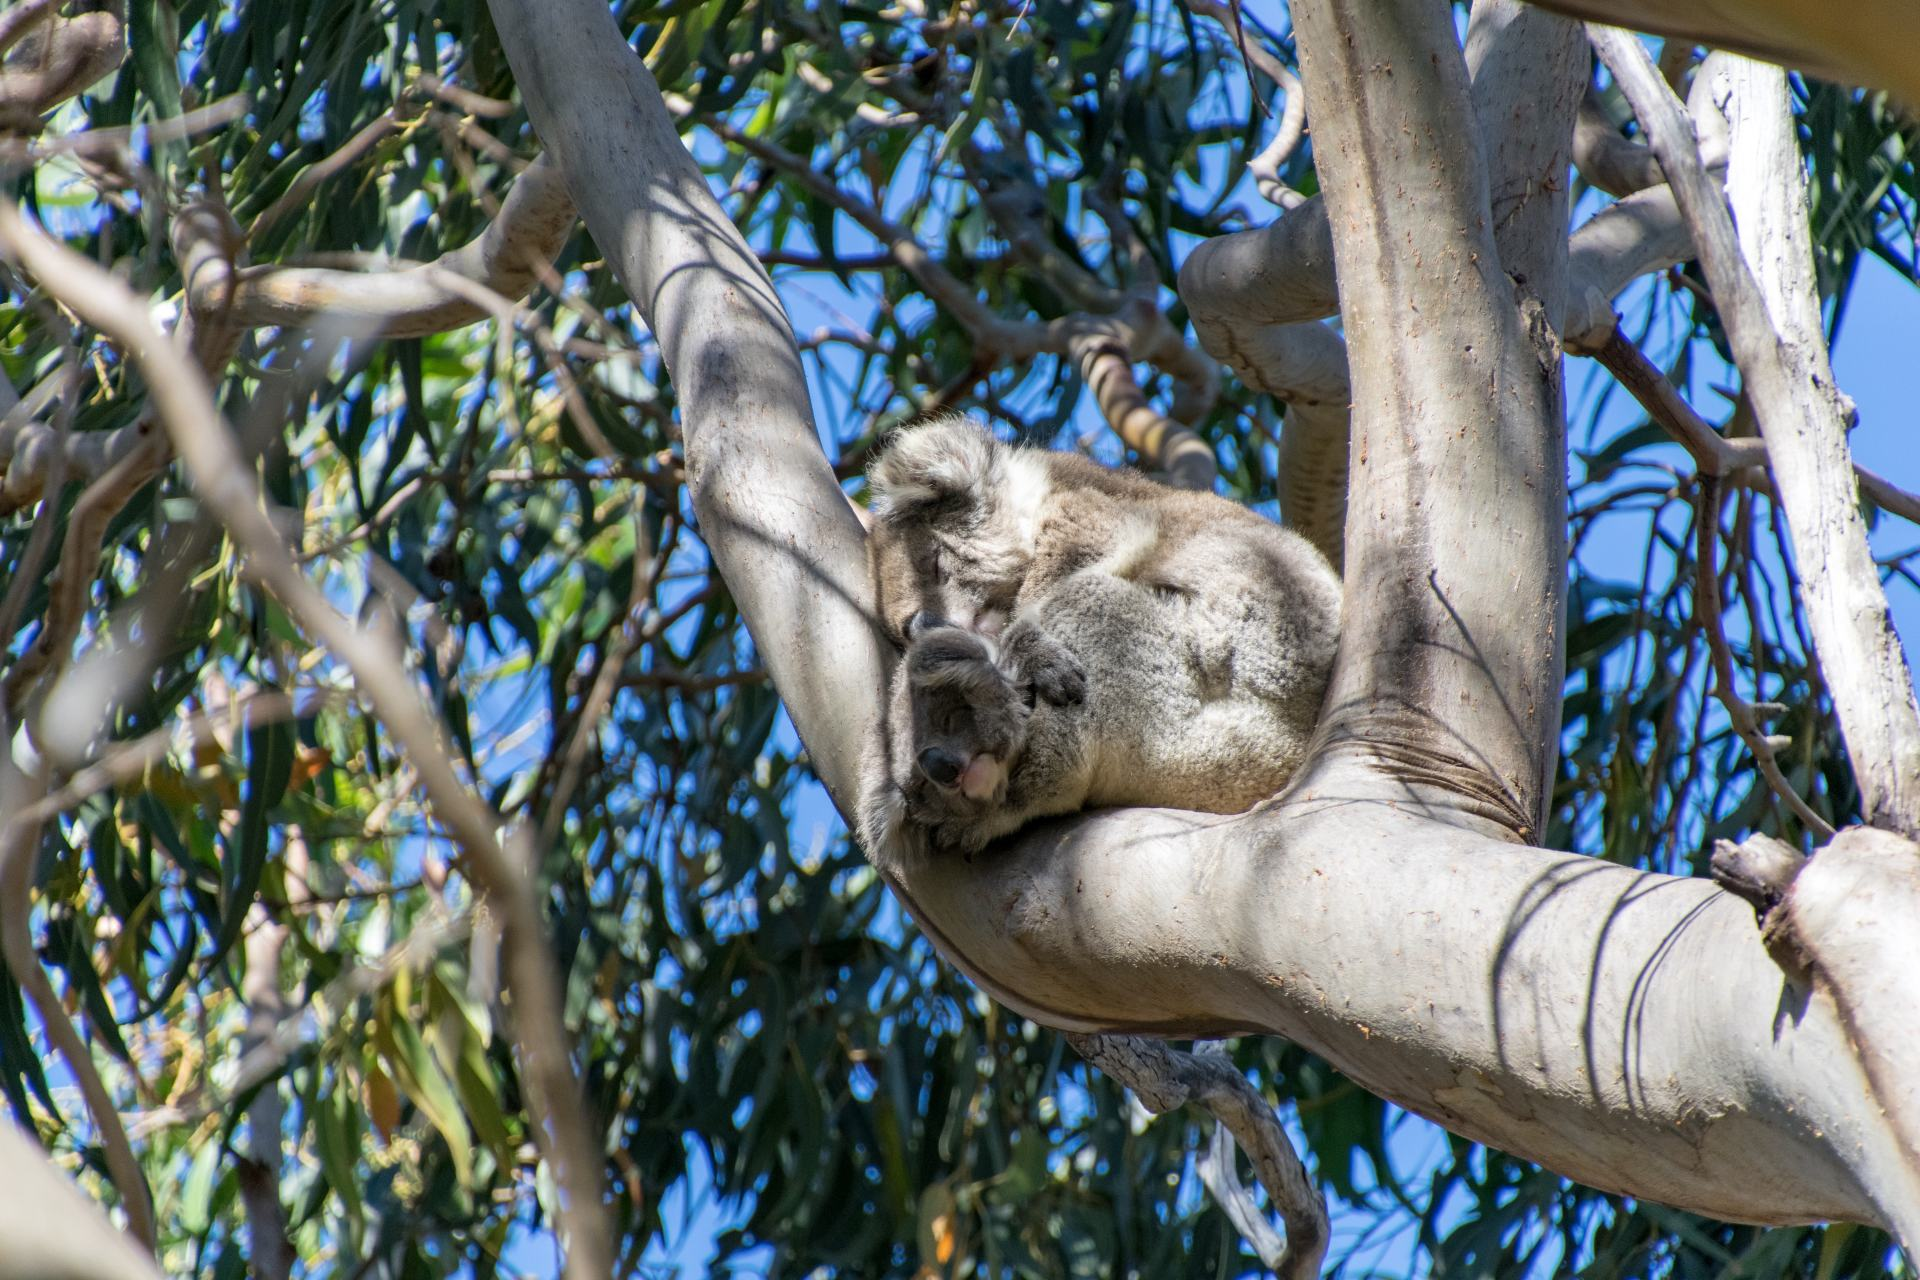 koala at hanson bay wildlife sanctuary